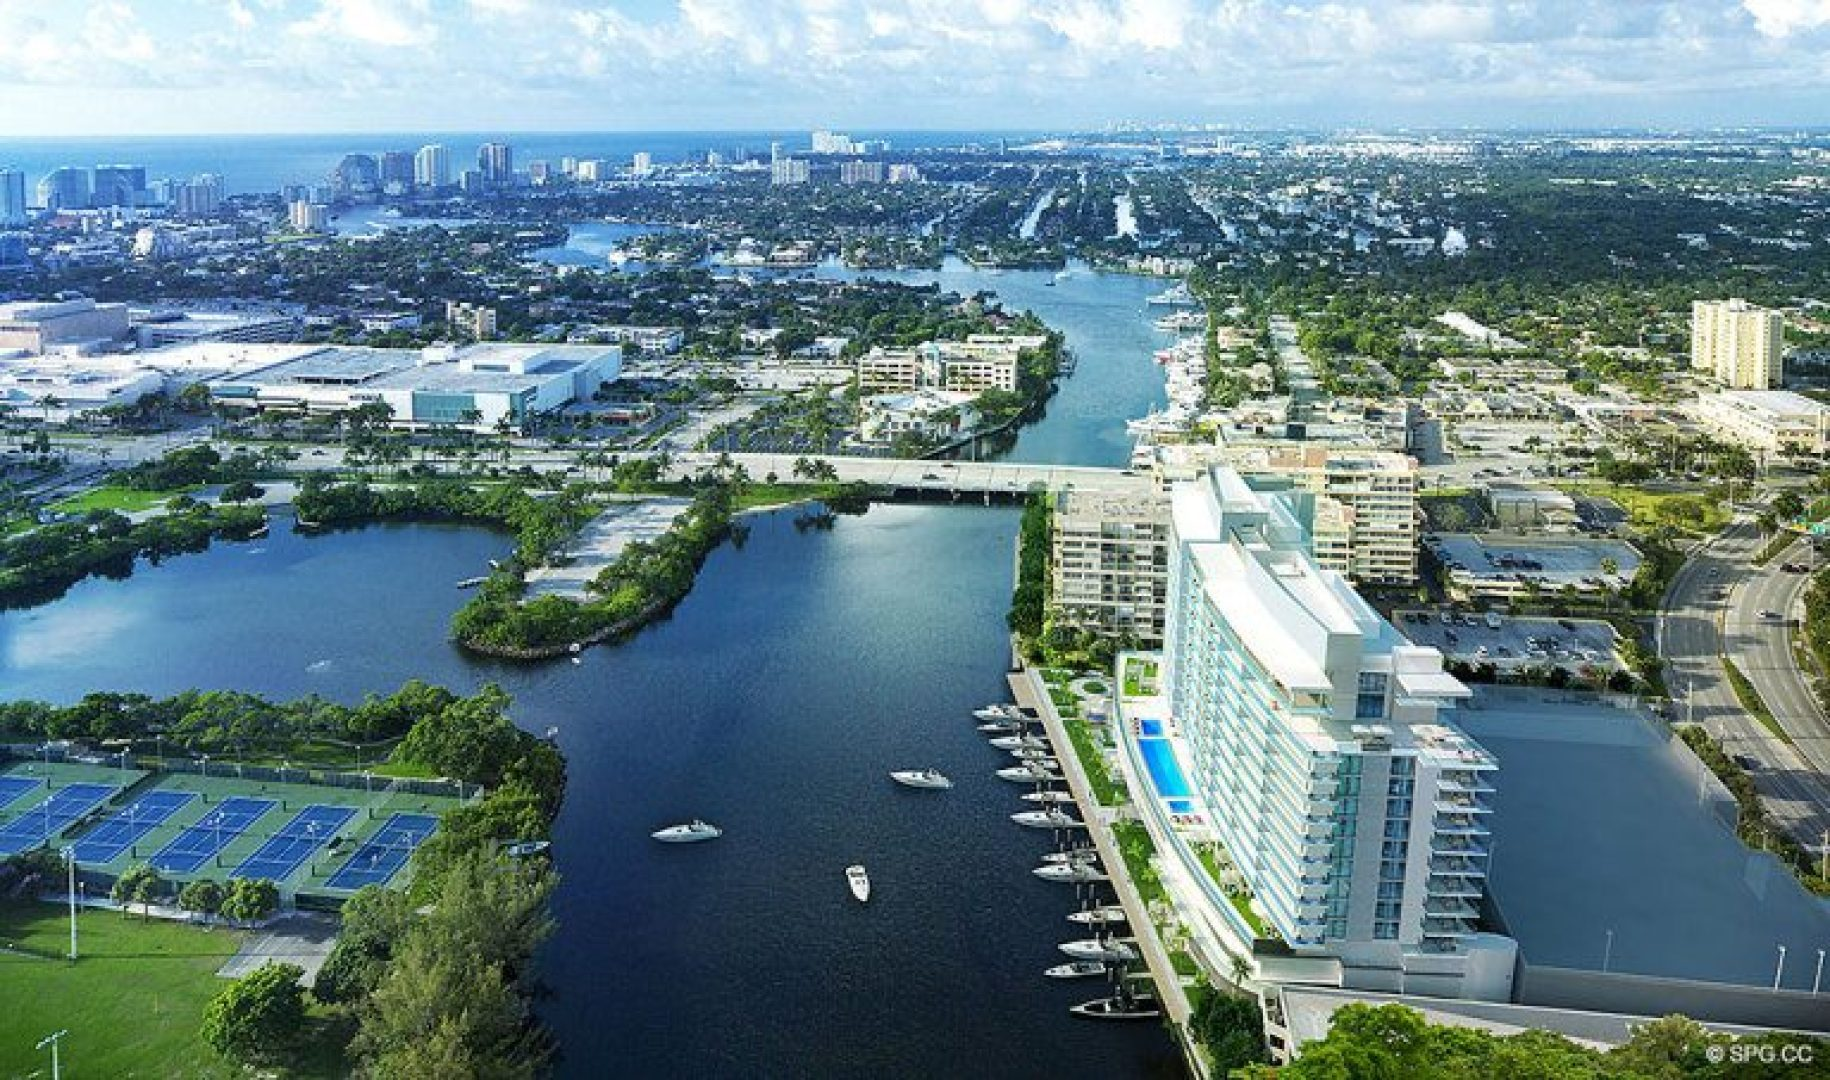 Aerial Intracoastal View of Riva, Luxury Waterfront Condos in Fort Lauderdale, Florida 33304.